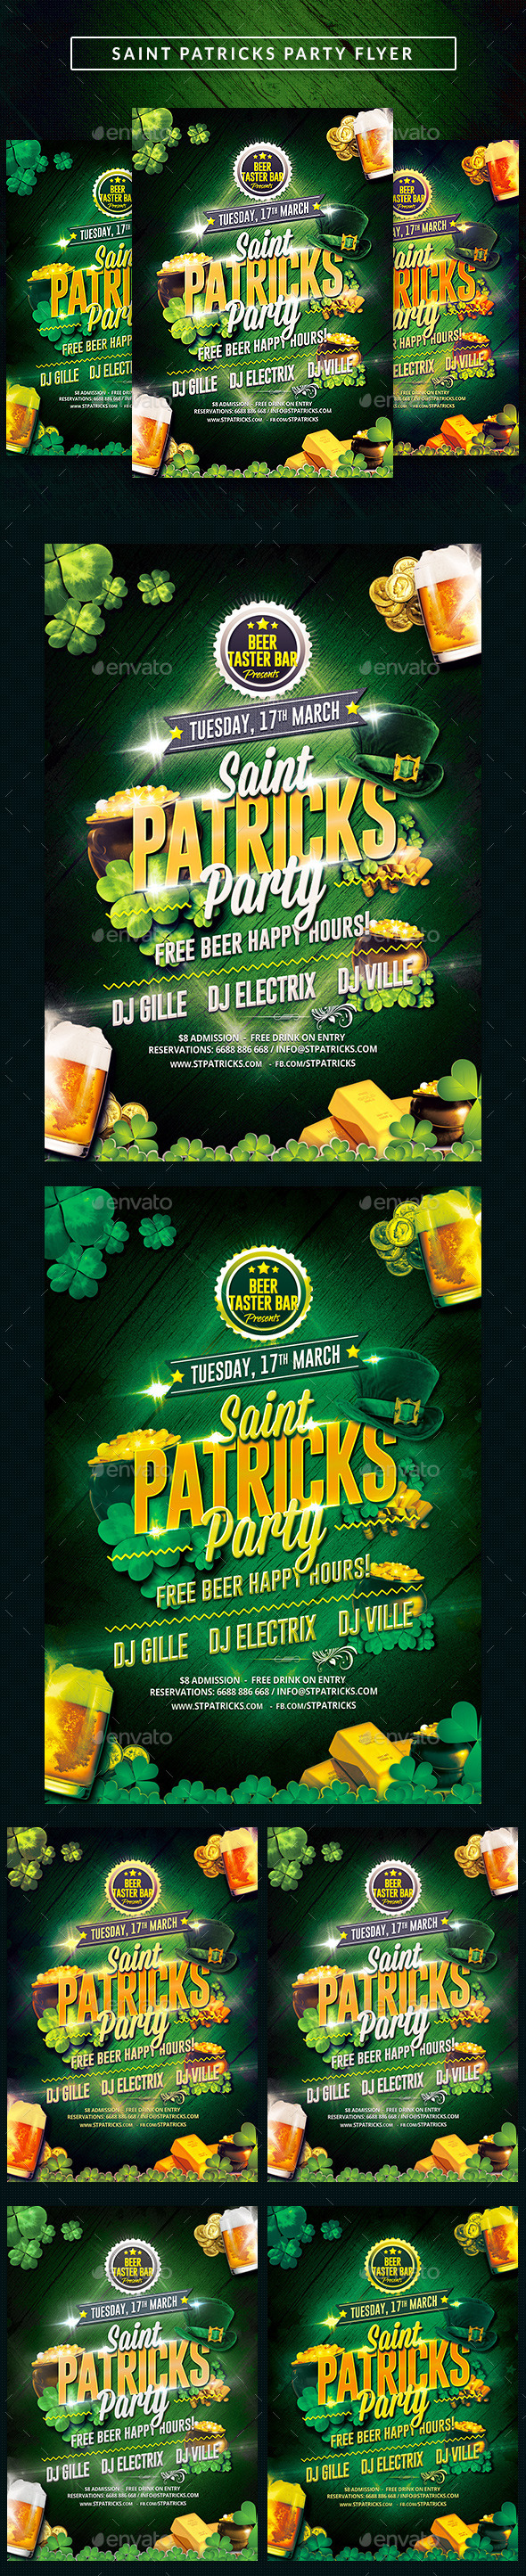 Saint Patricks Party Flyer - Clubs & Parties Events